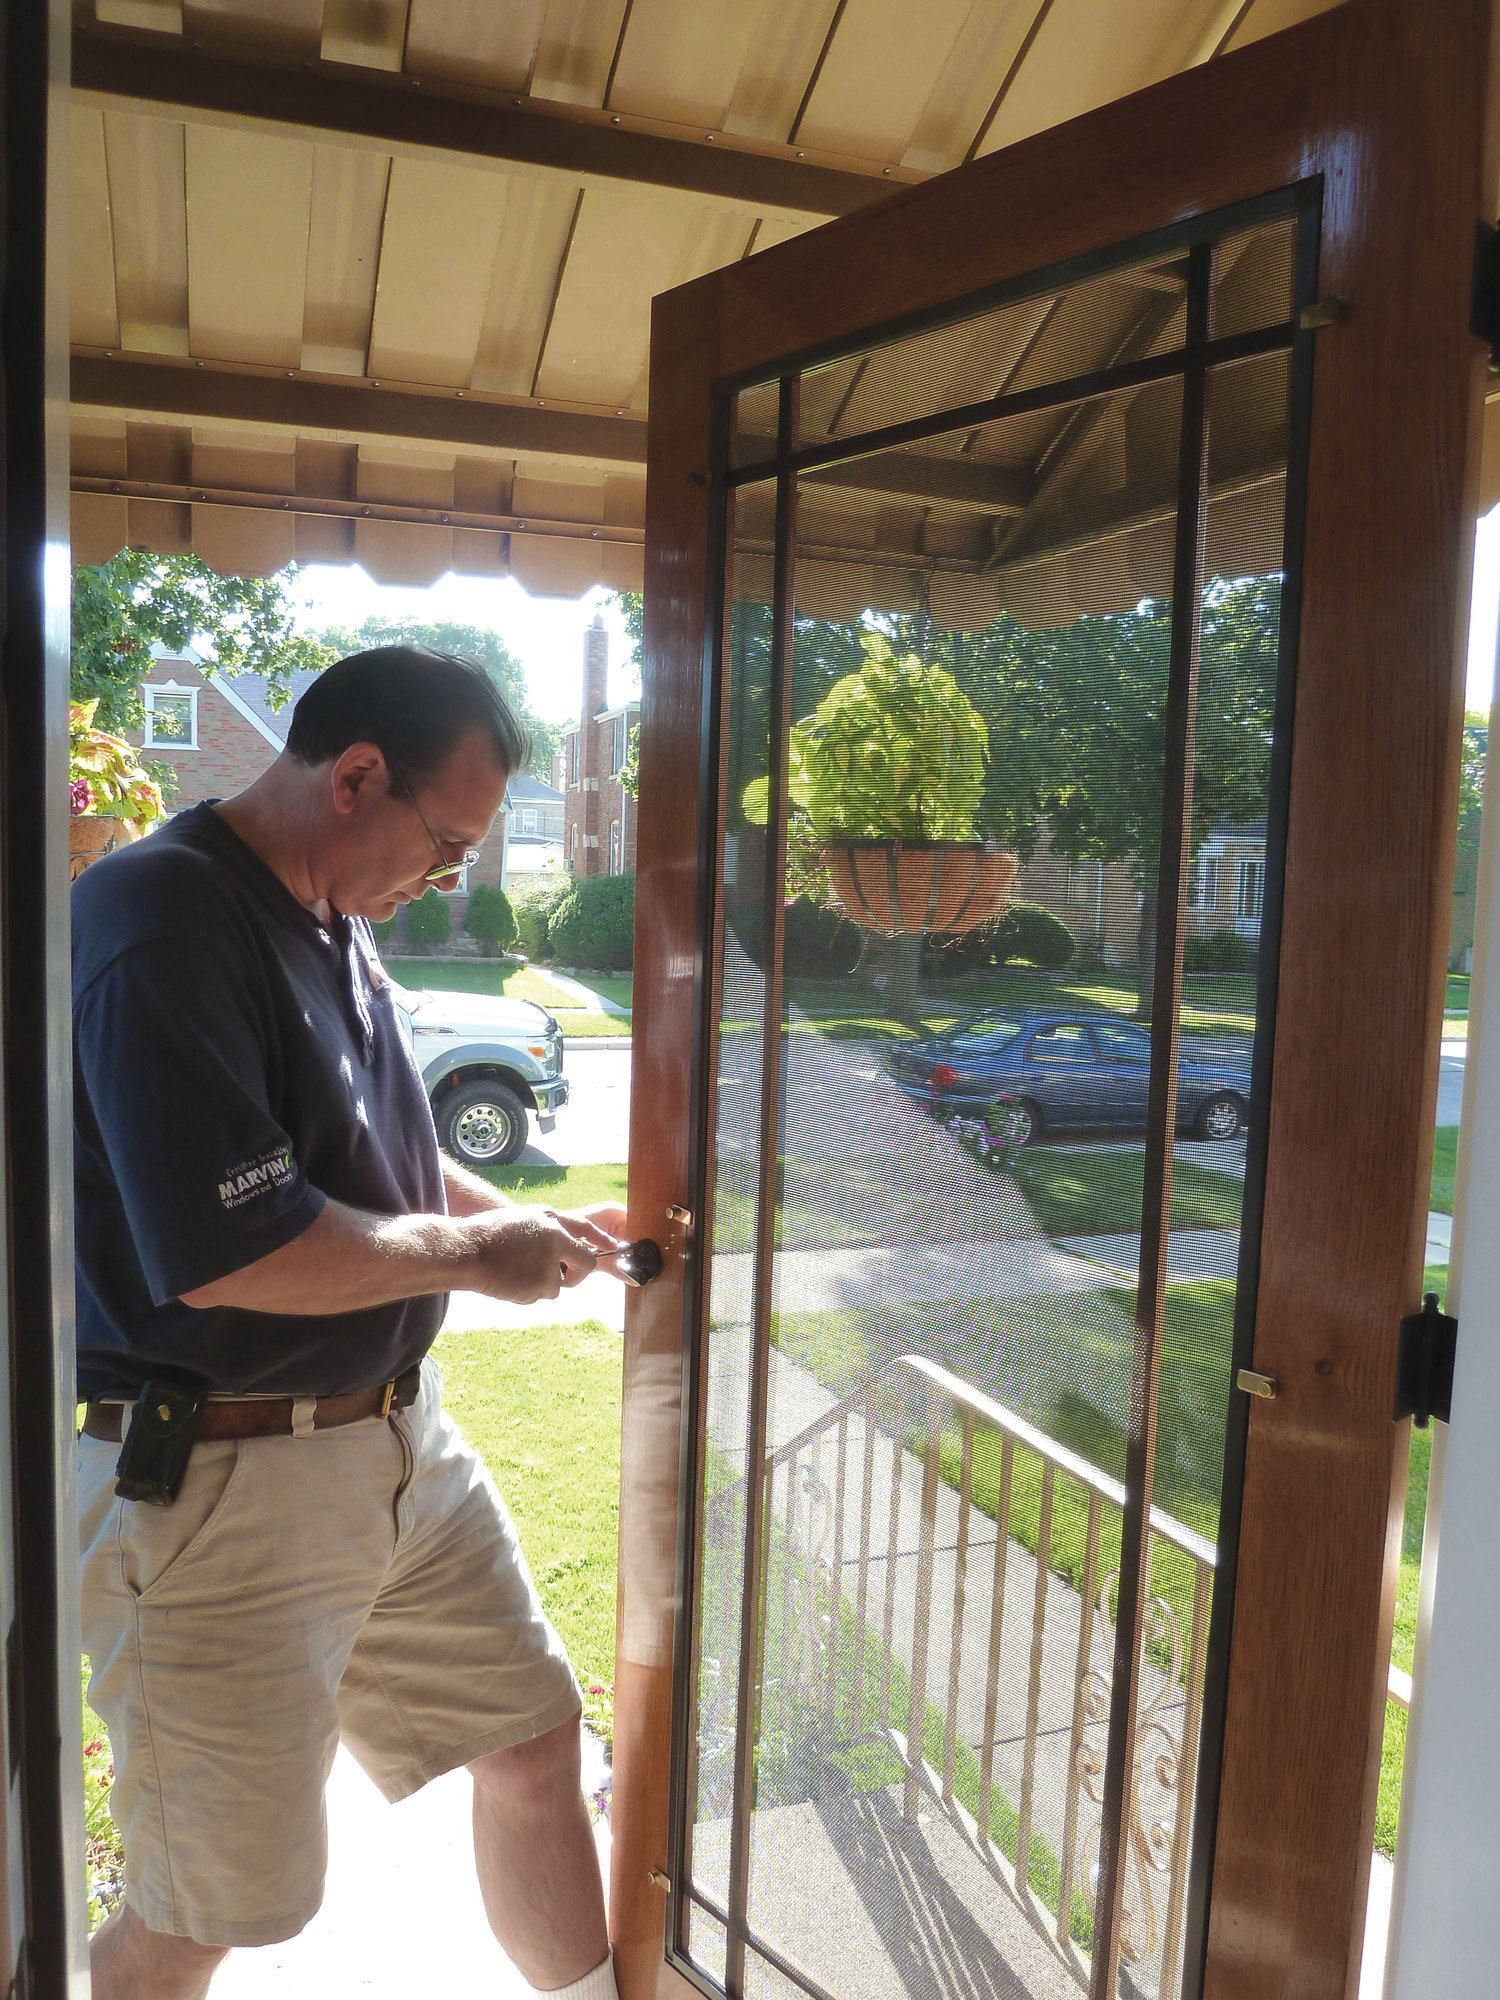 Building A Wooden Screen Door Jlc Online